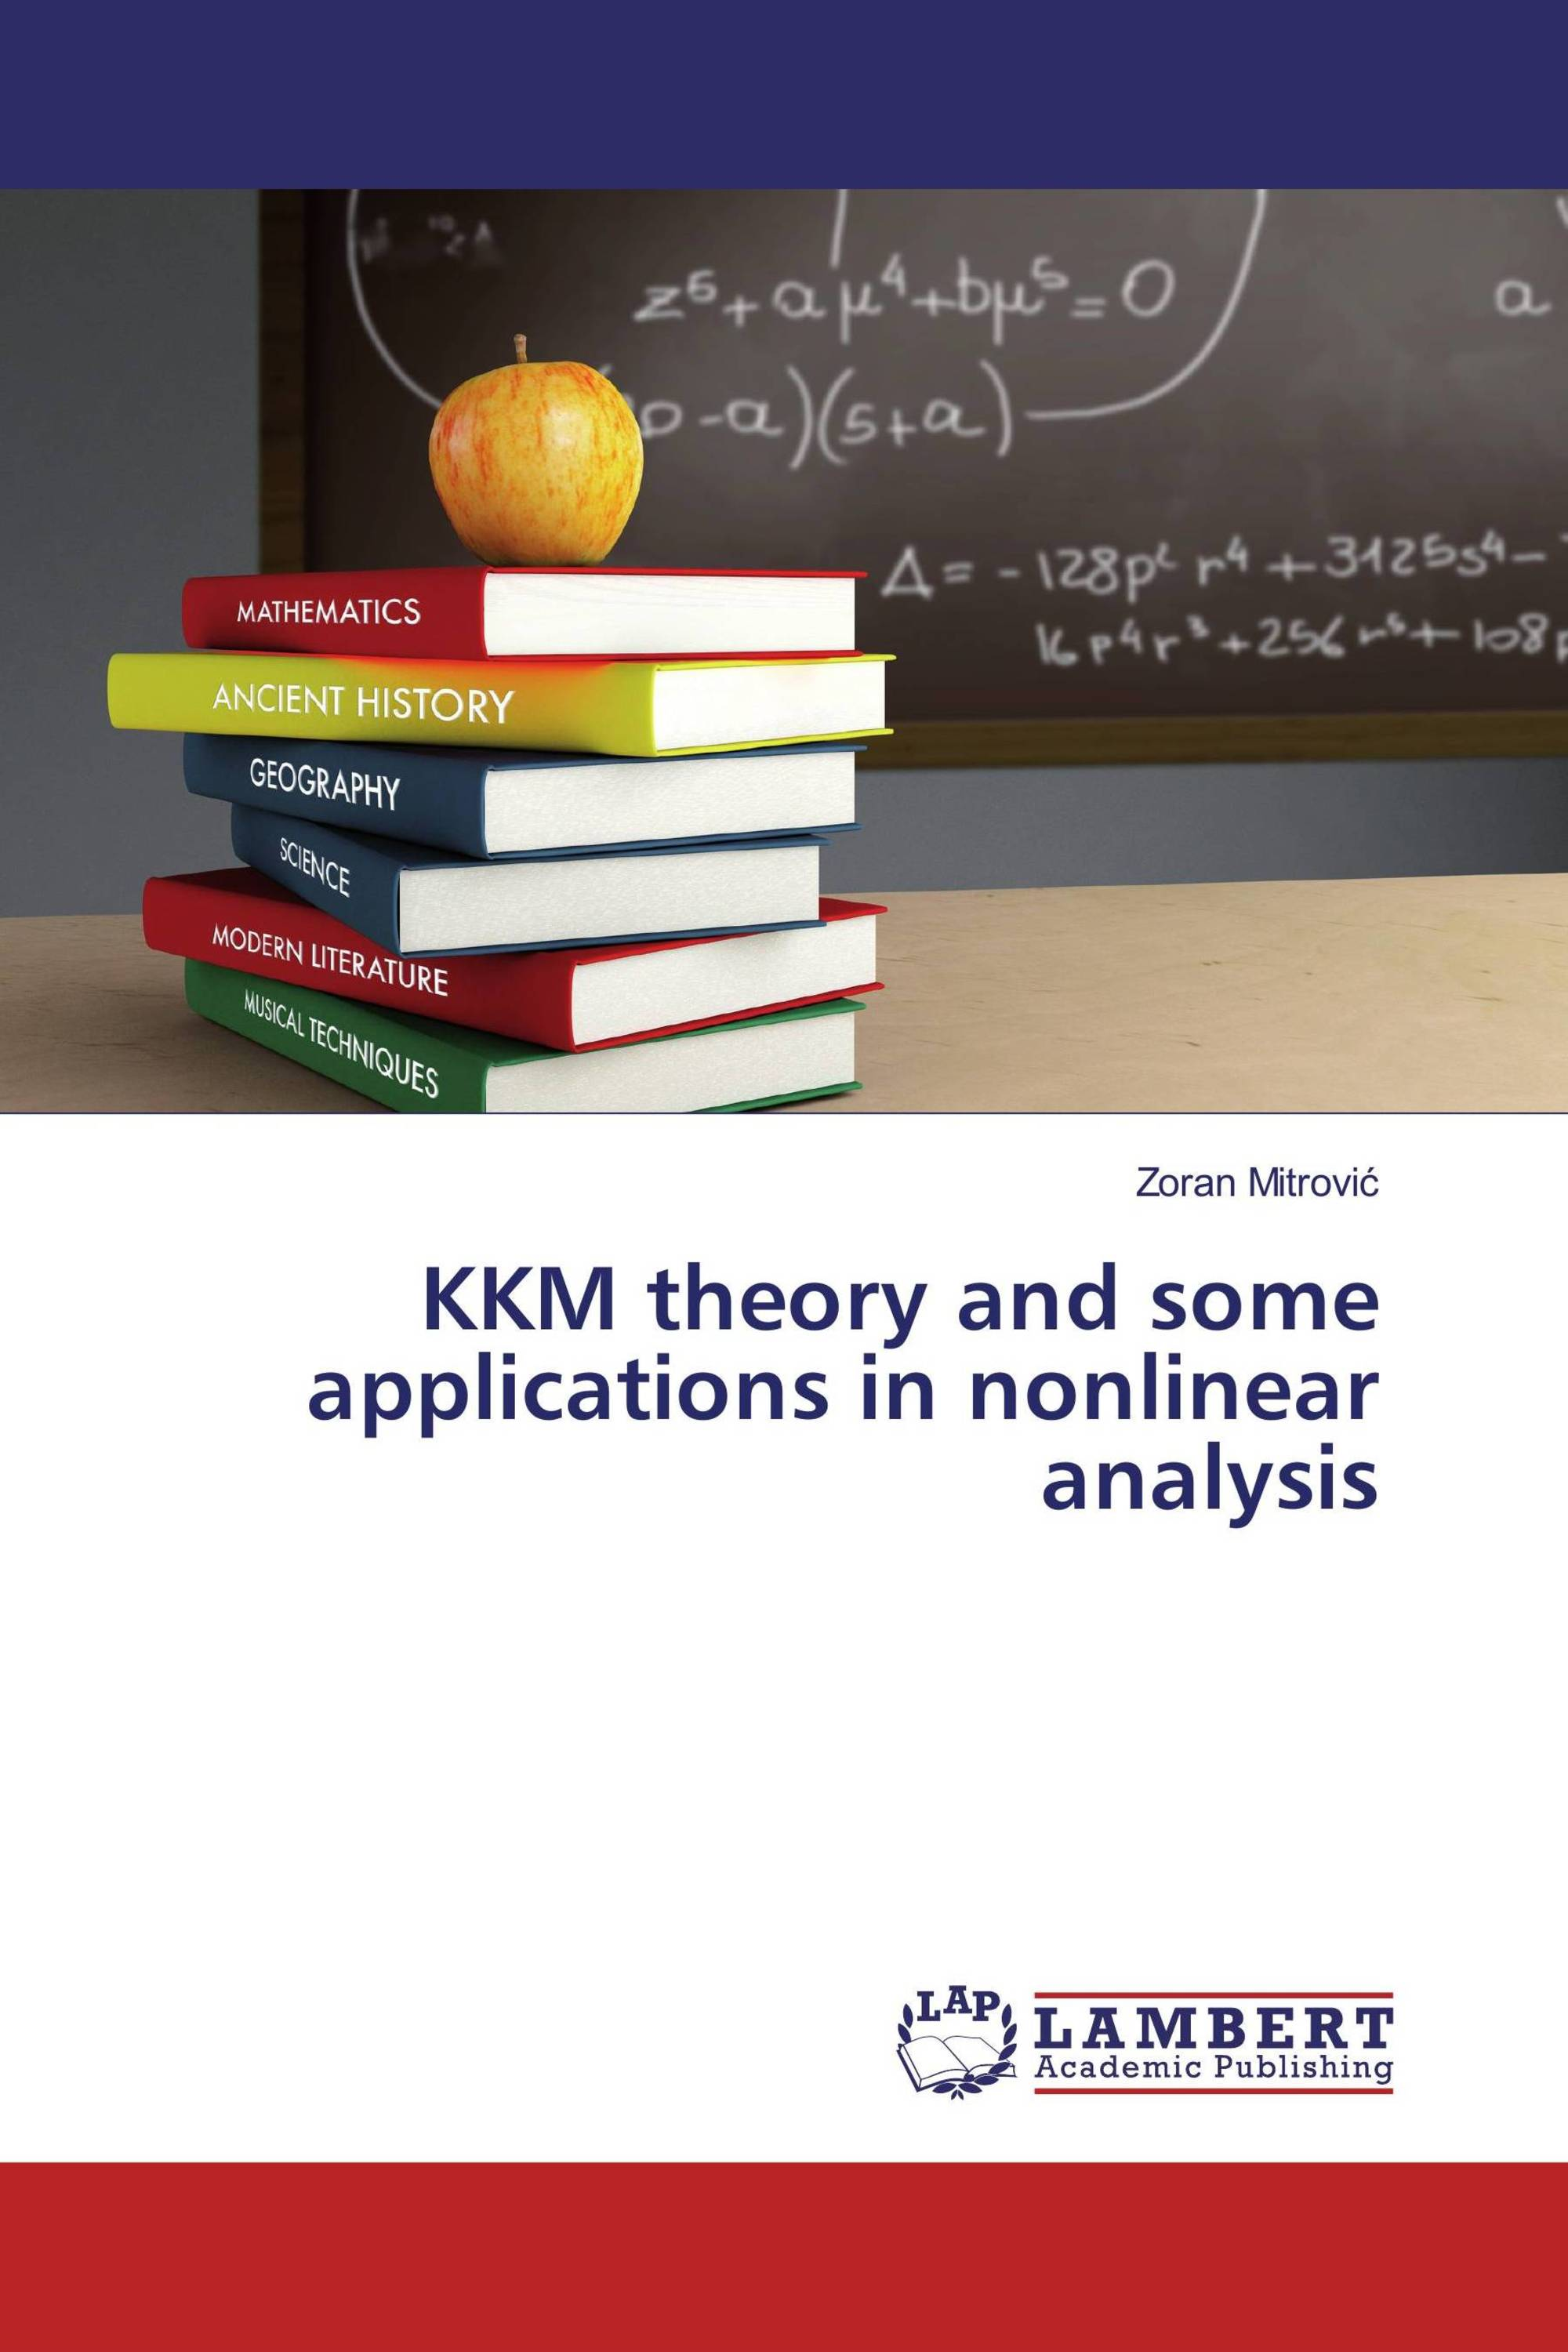 KKM theory and some applications in nonlinear analysis